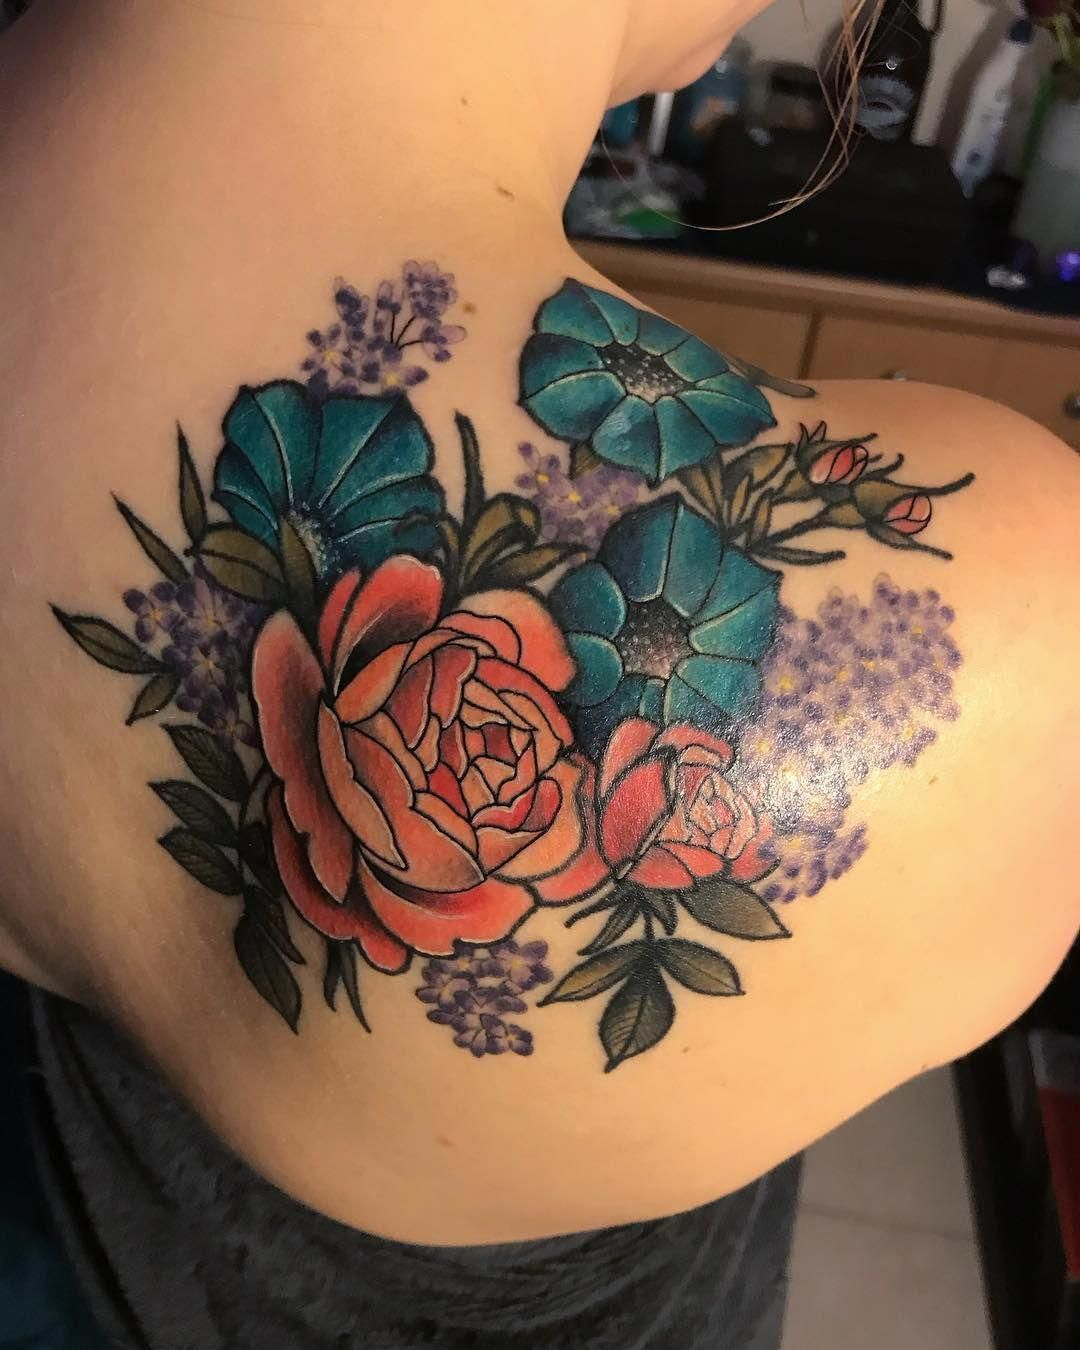 Rose Tattoos Models and Meanings That Add a Different